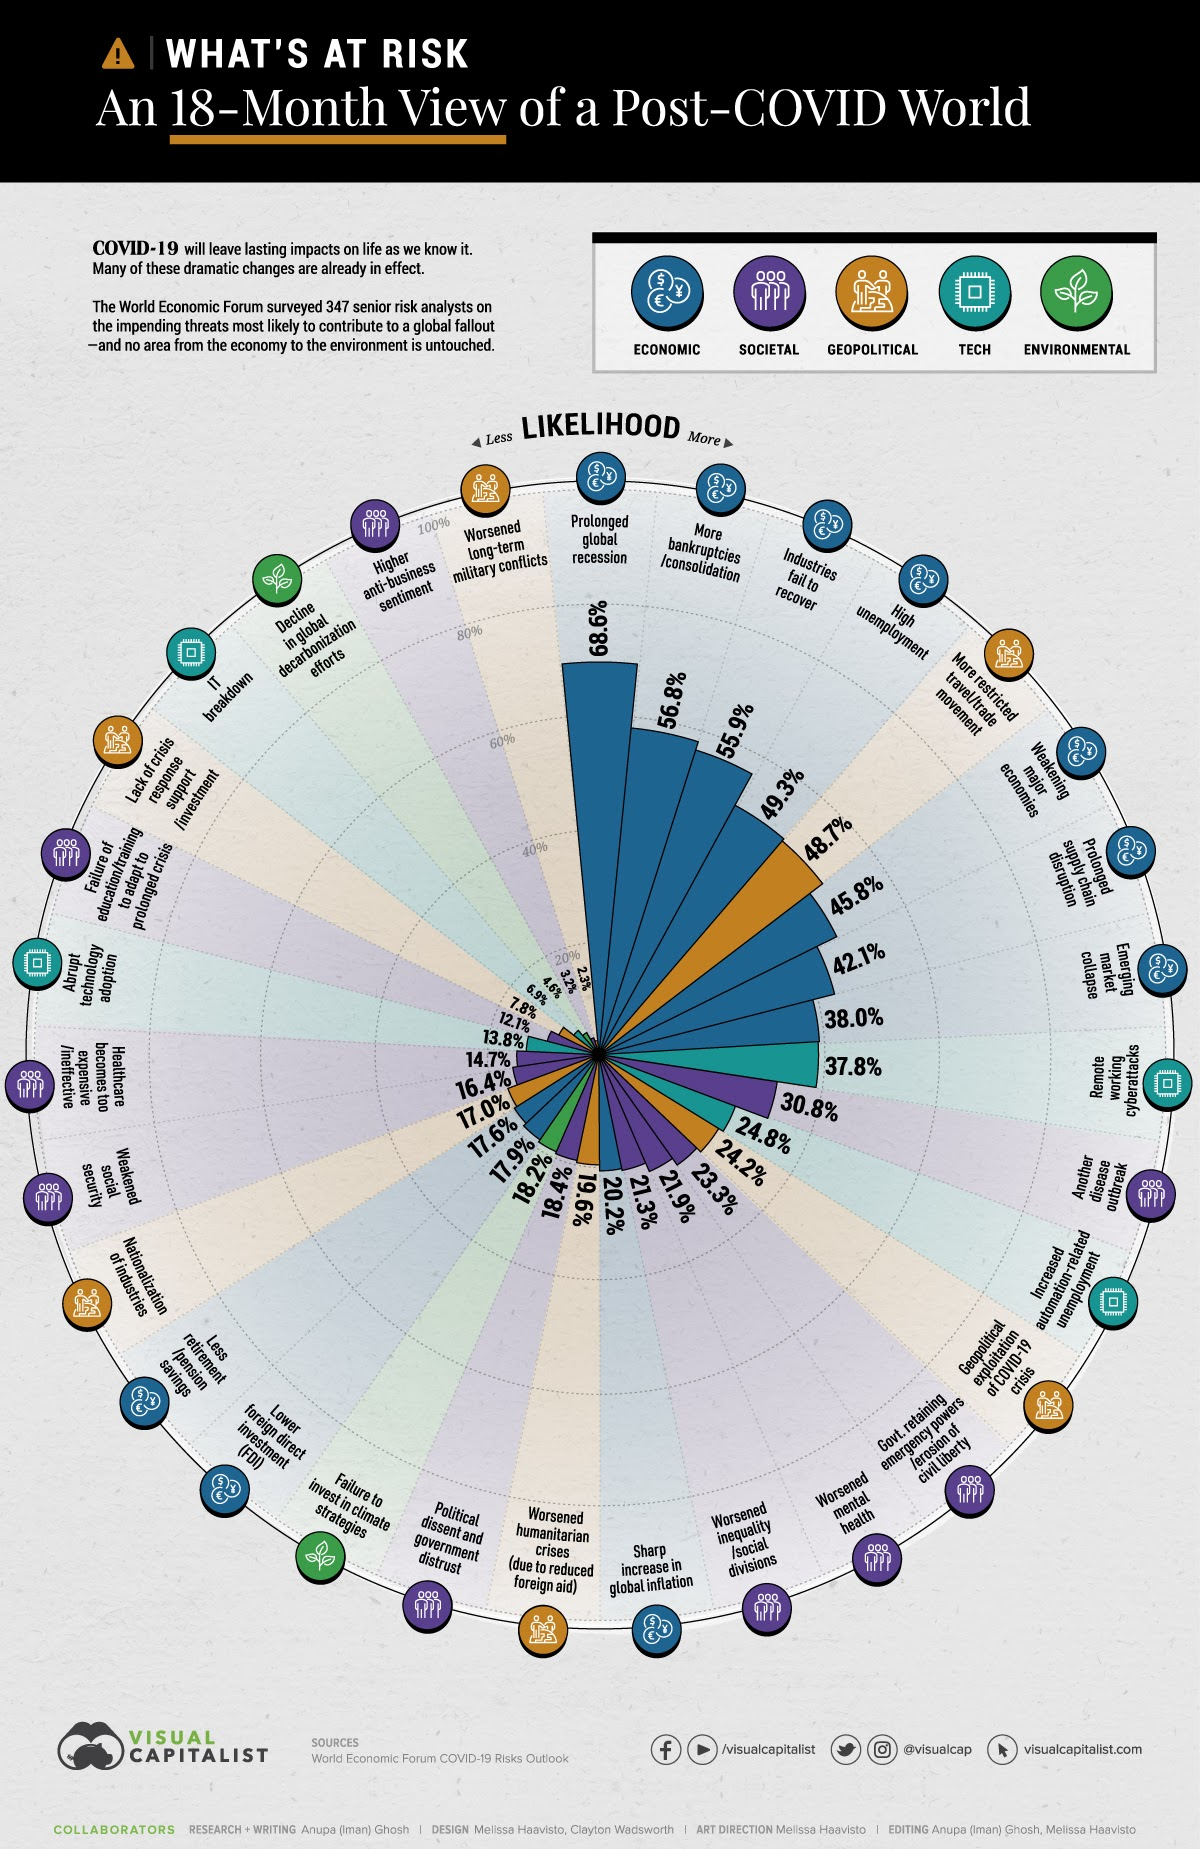 What's At Risk: An 18-Month View of a Post-COVID World #infographic